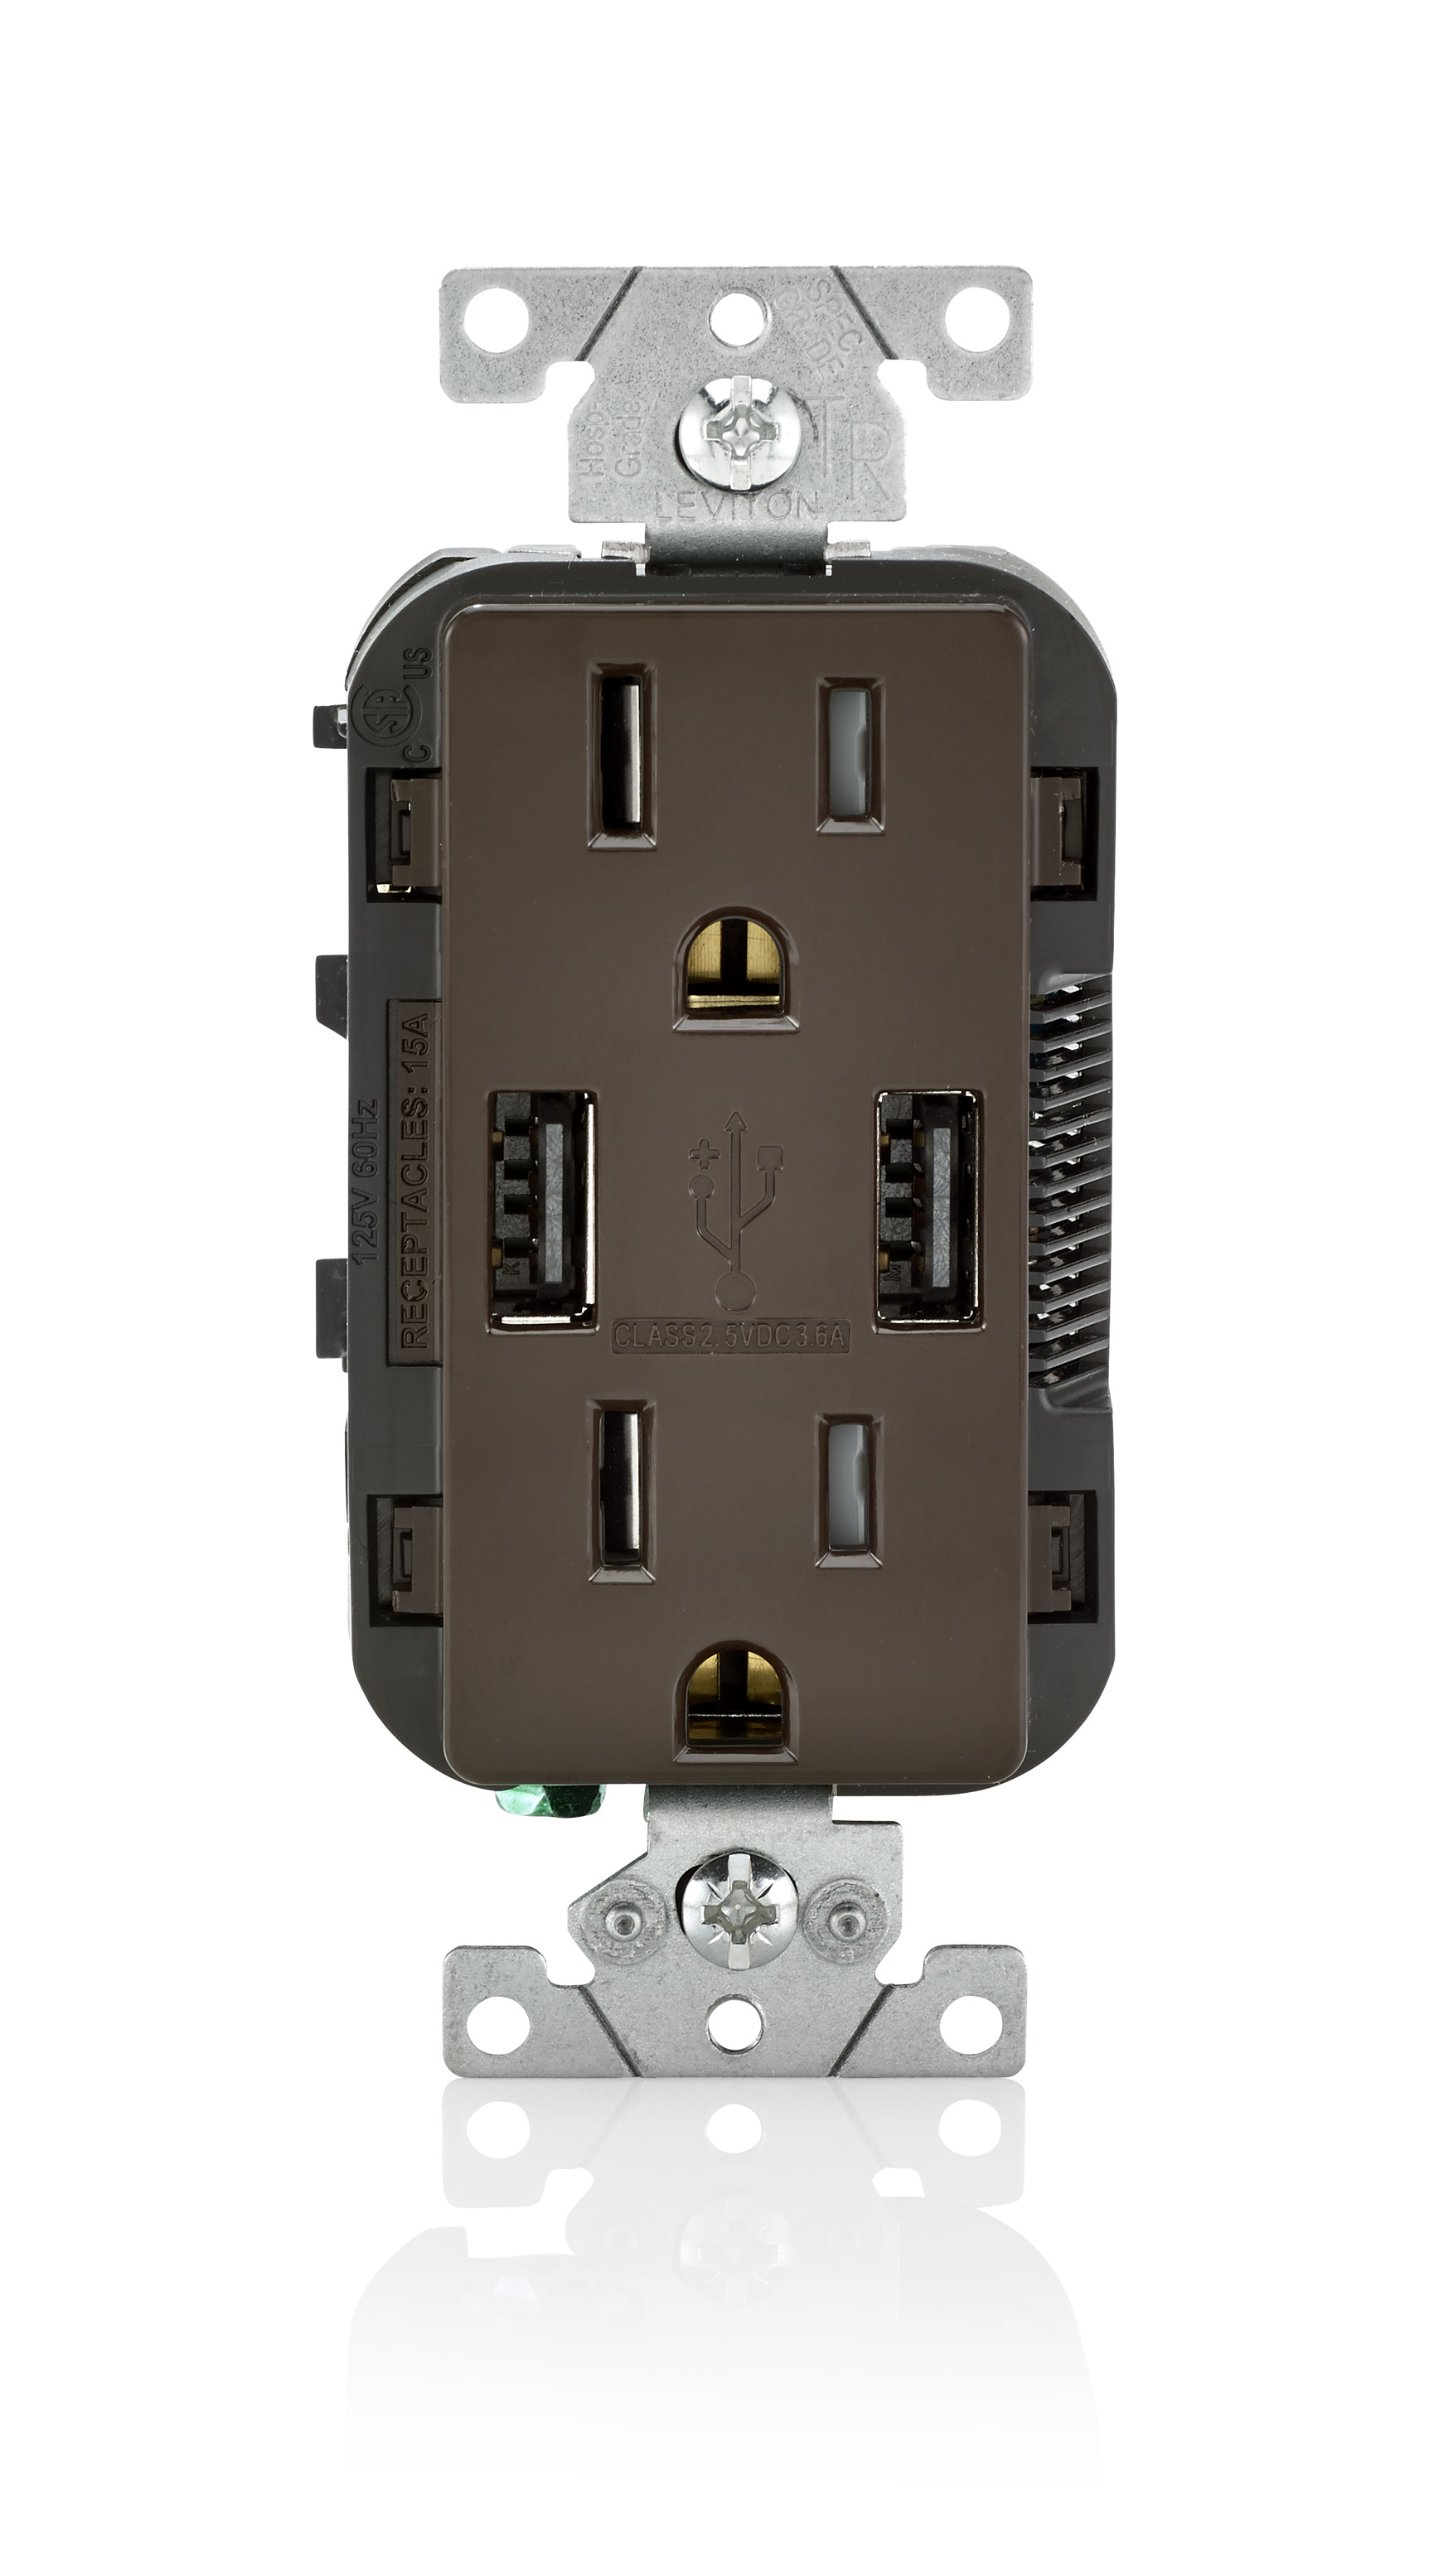 Leviton T5632 15-Amp USB Charger/Tamper Resistant Duplex Receptacle, Brown by Leviton